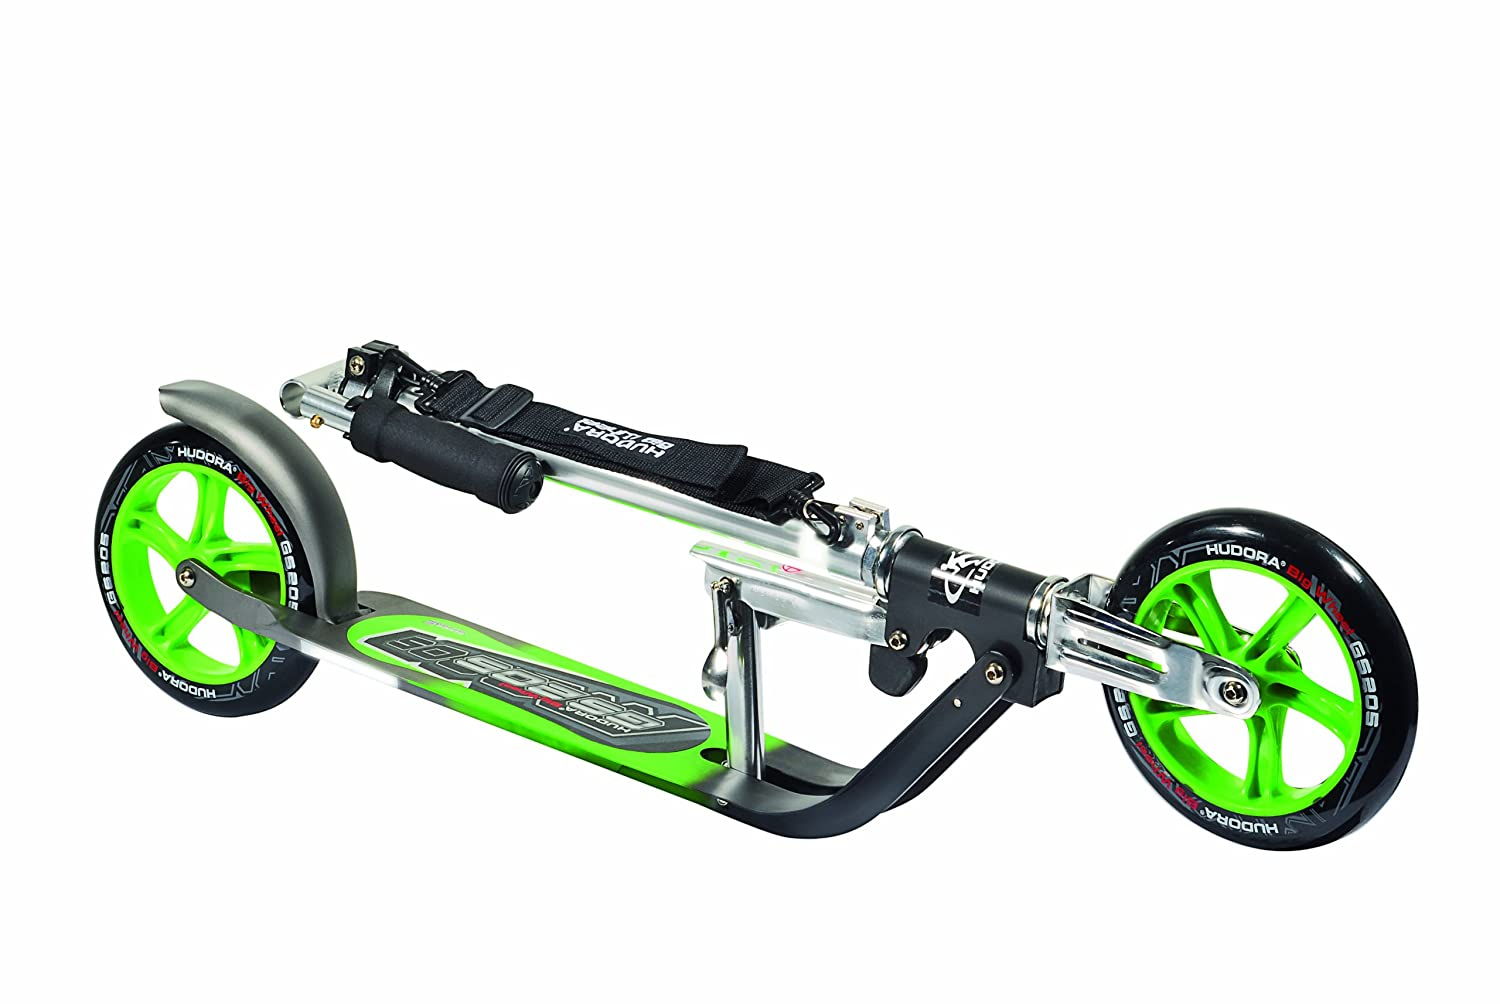 Patinete verde ruedas 205mm plegable